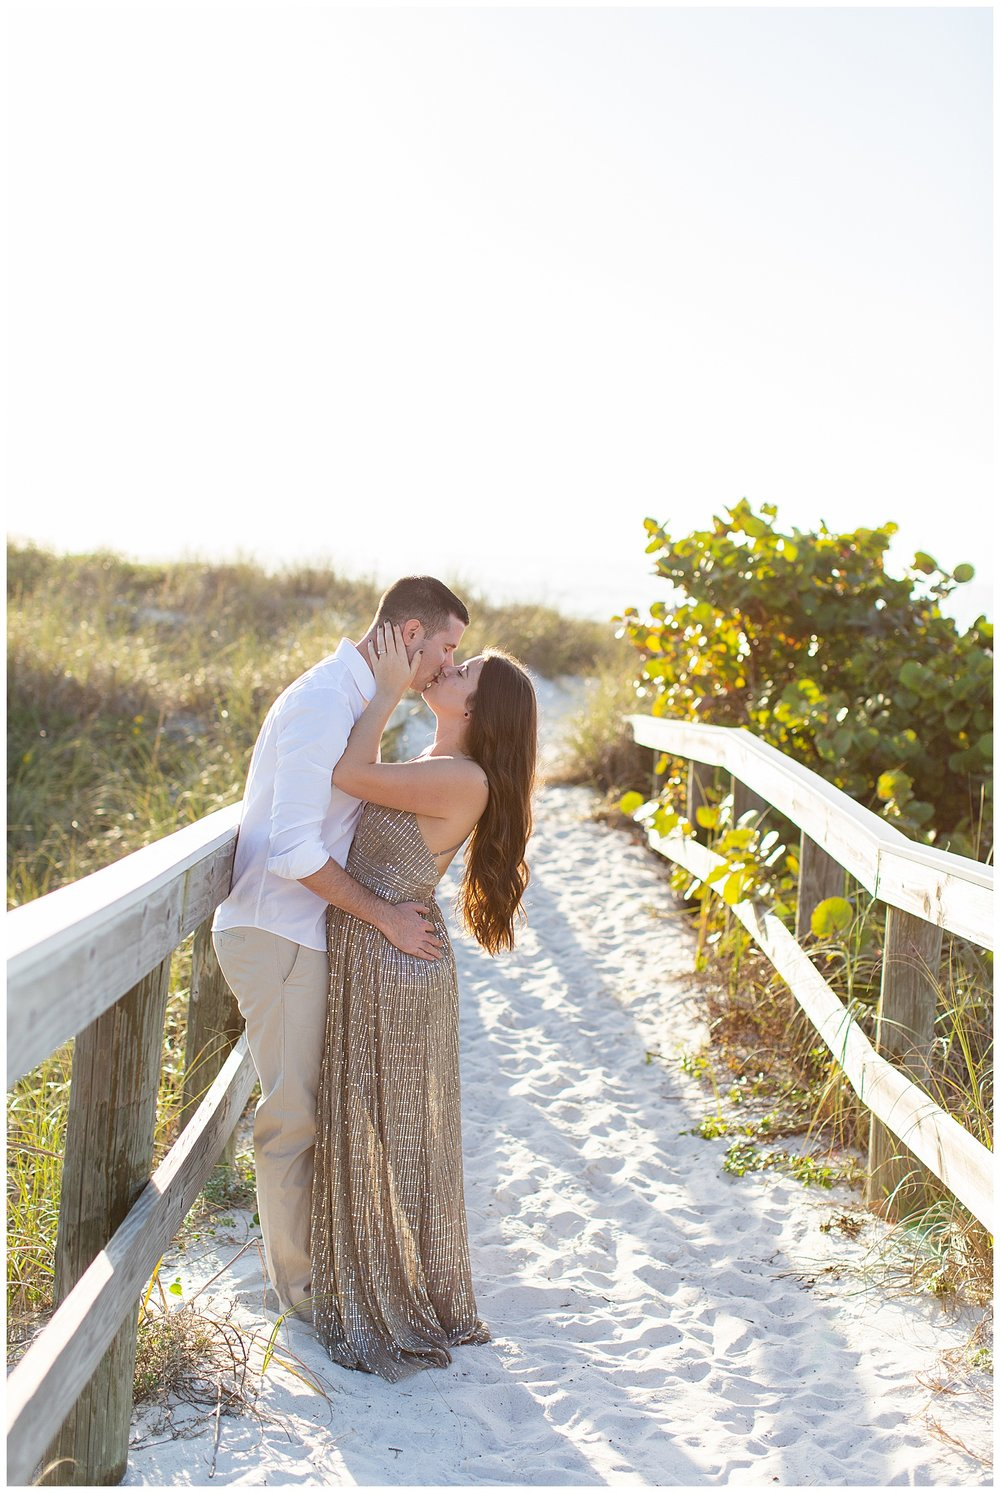 emily-belson-photography-florida-engagement-11.jpg